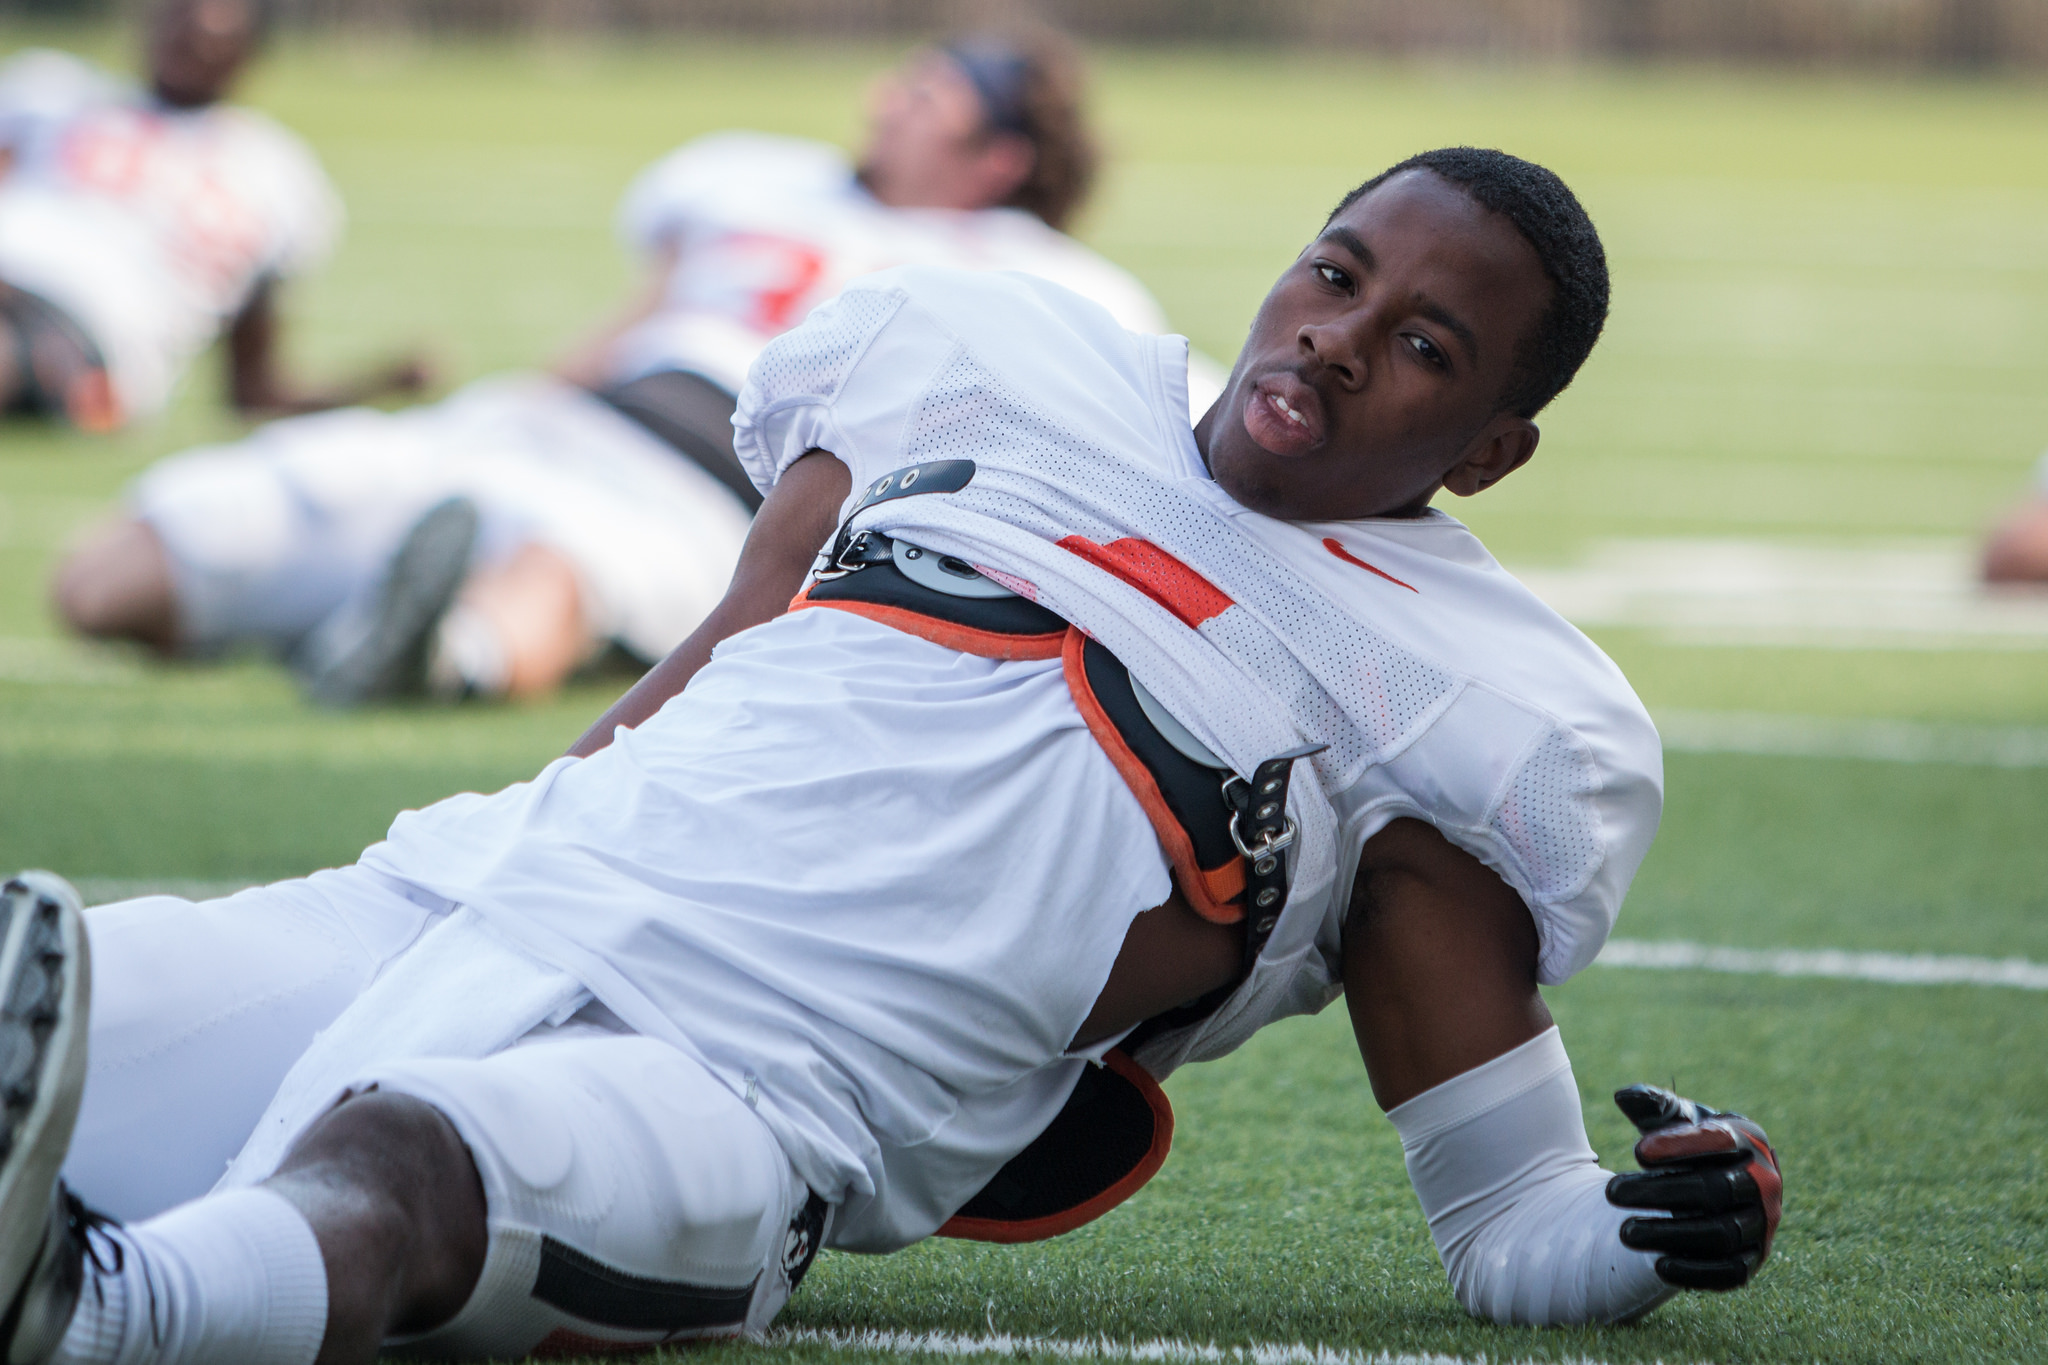 100 Days of Summer Get to Know No 4 A J Green